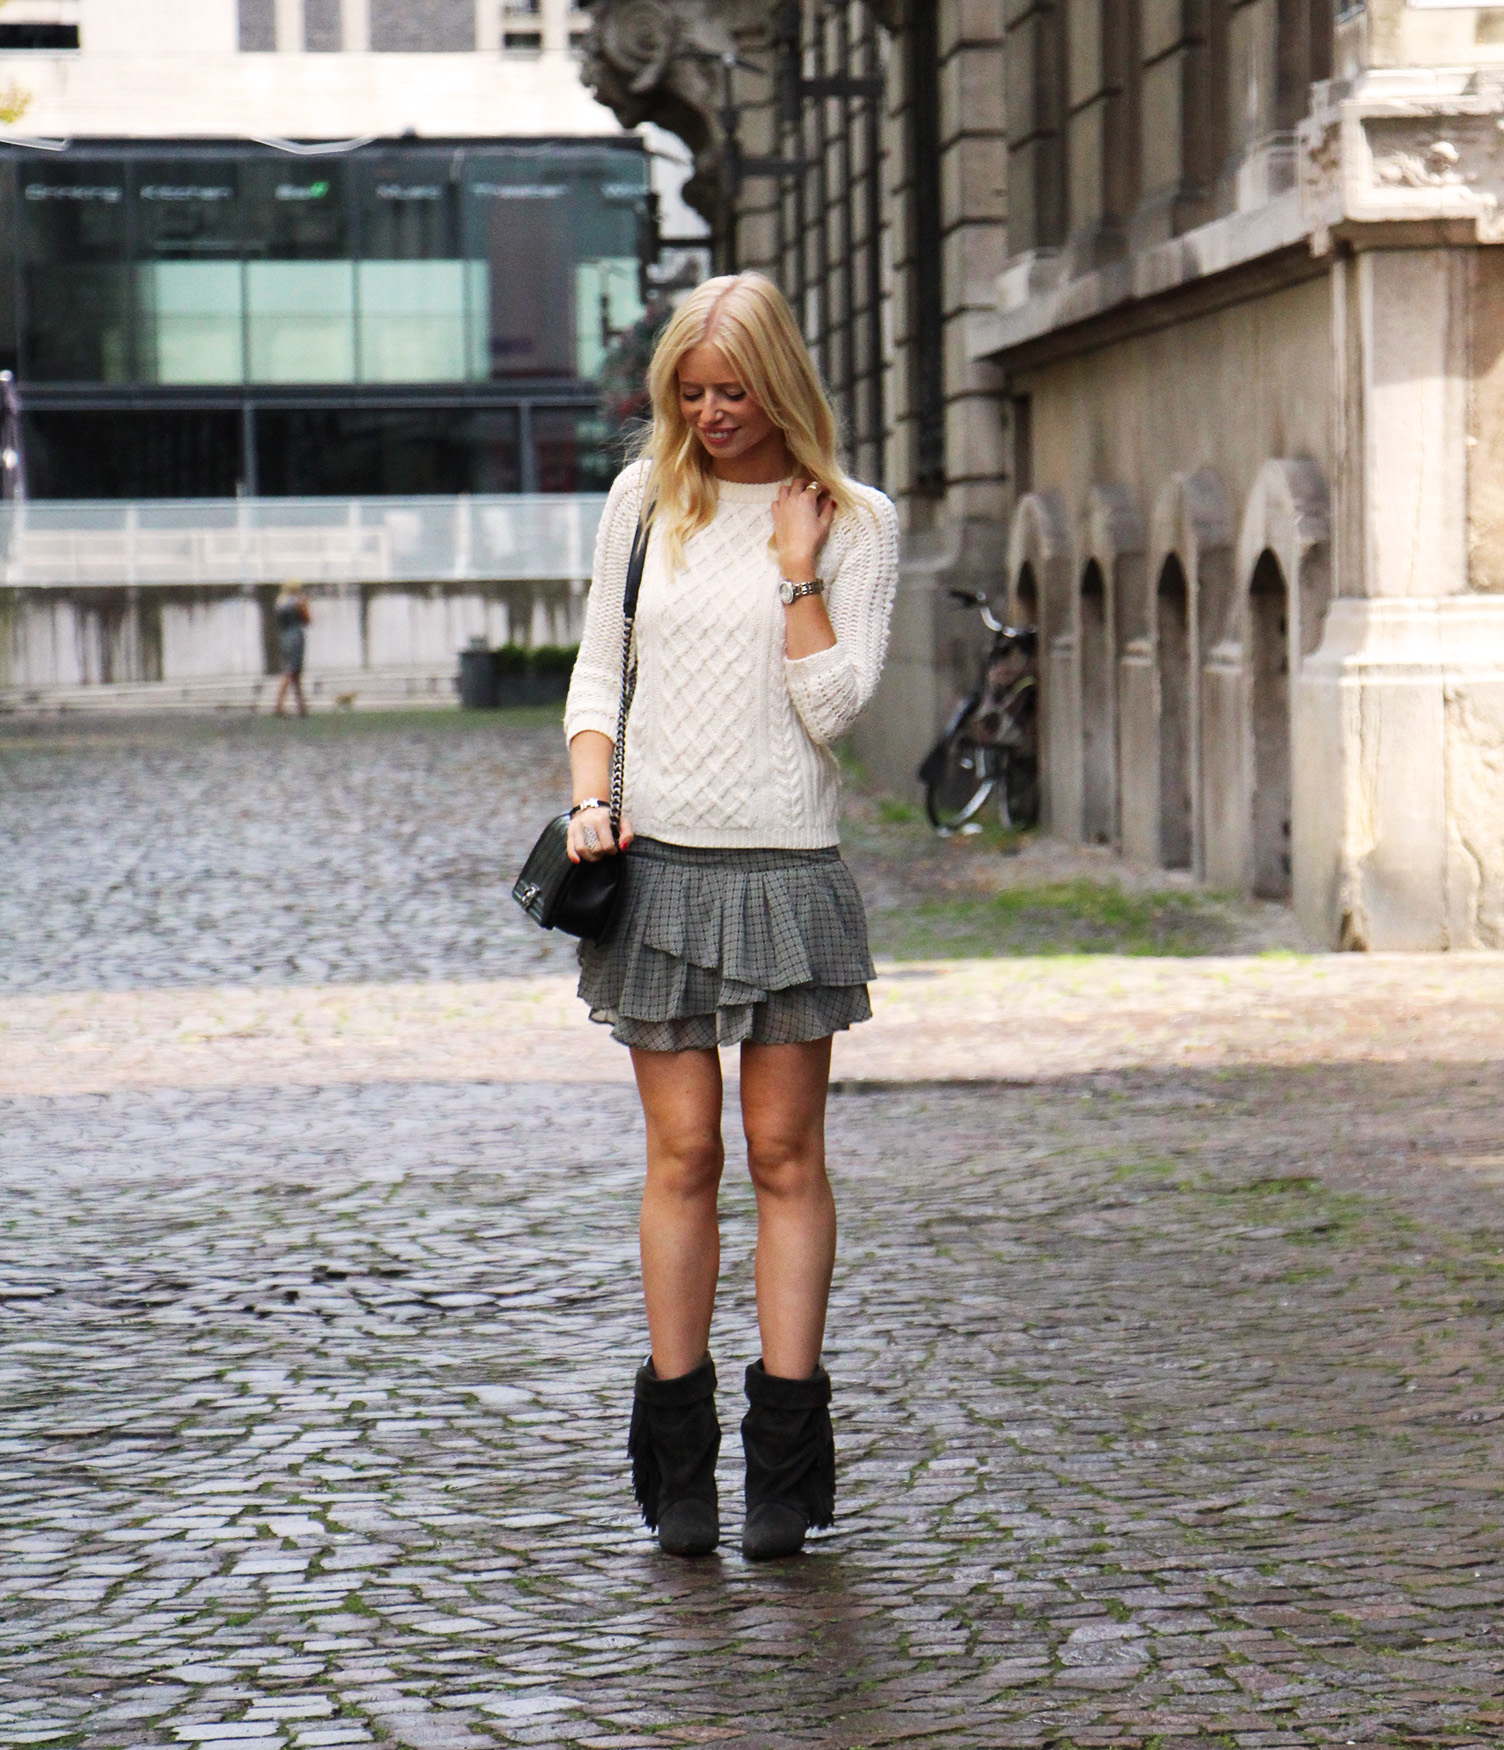 Outfit || The fringed boots